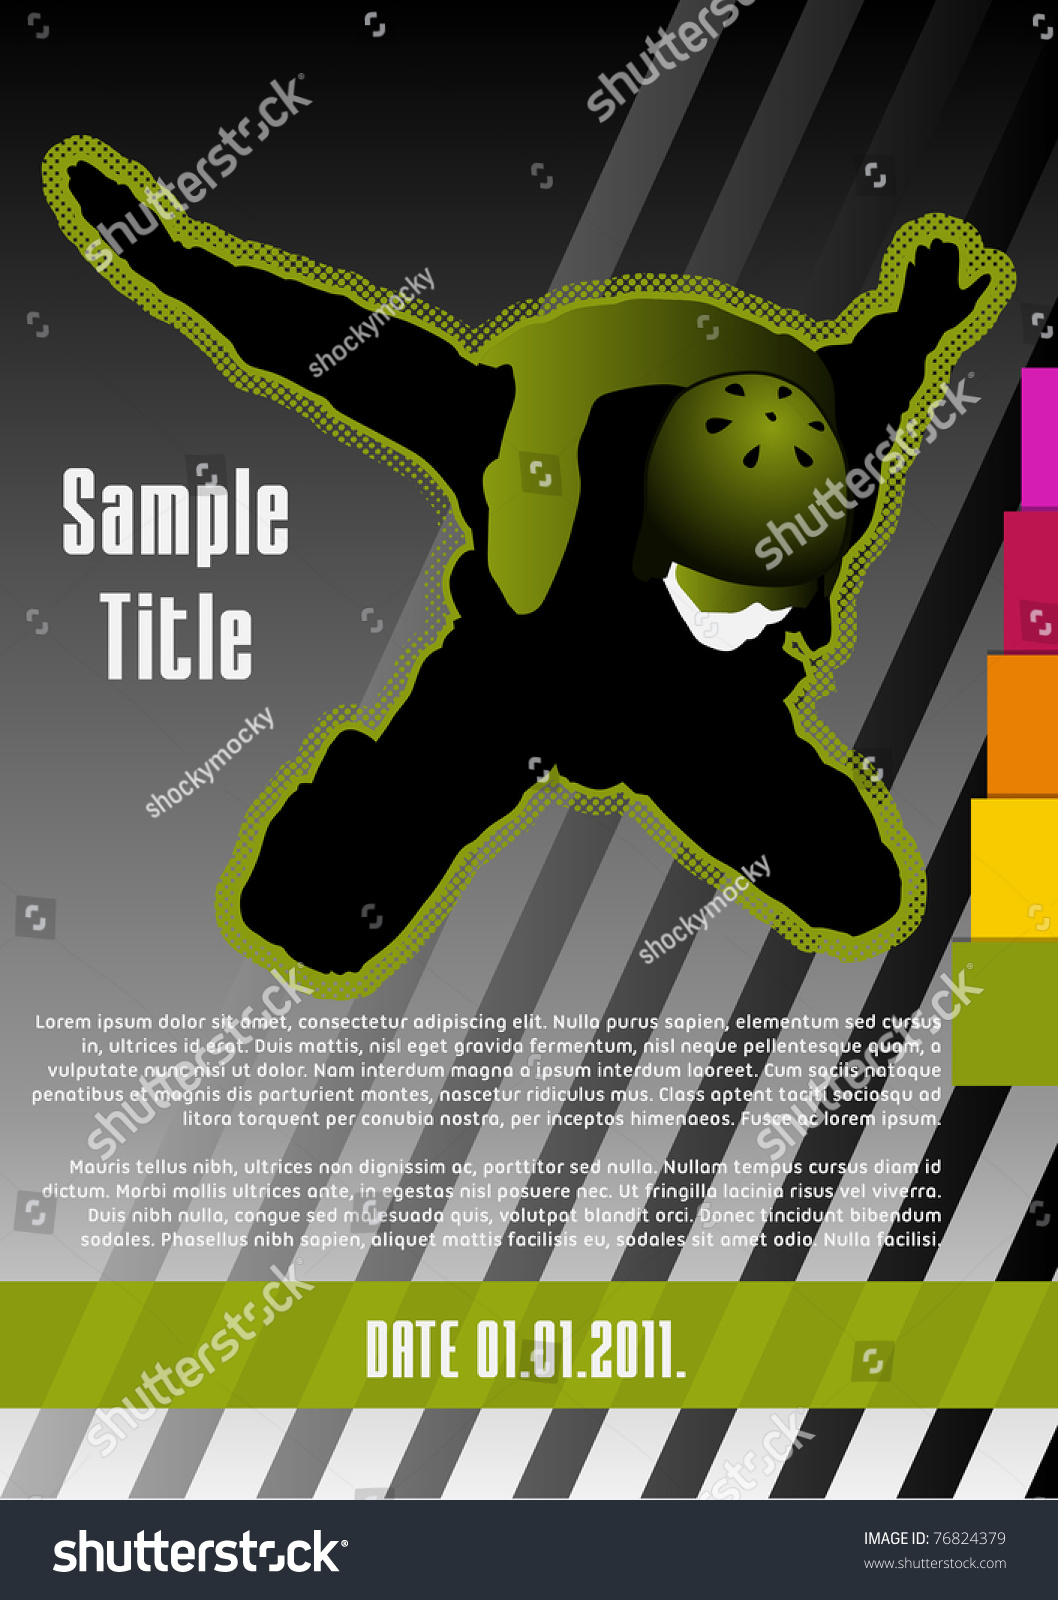 Parachuting Concept Poster Template. Vector Illustration. - 76824379 ...